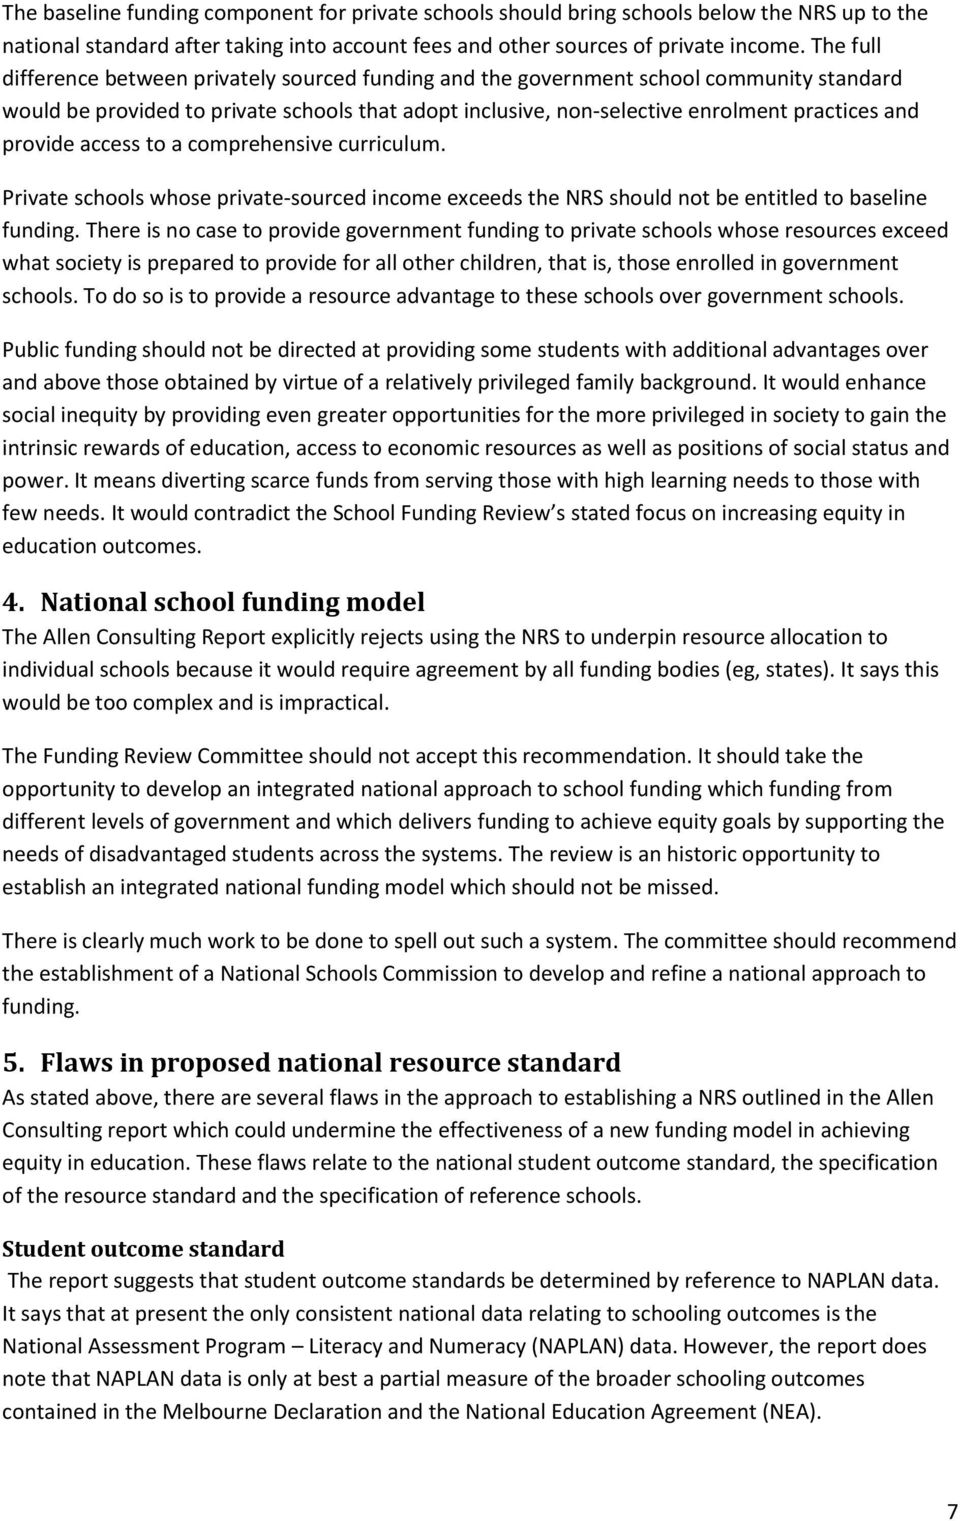 provide access to a comprehensive curriculum. Private schools whose private-sourced income exceeds the NRS should not be entitled to baseline funding.